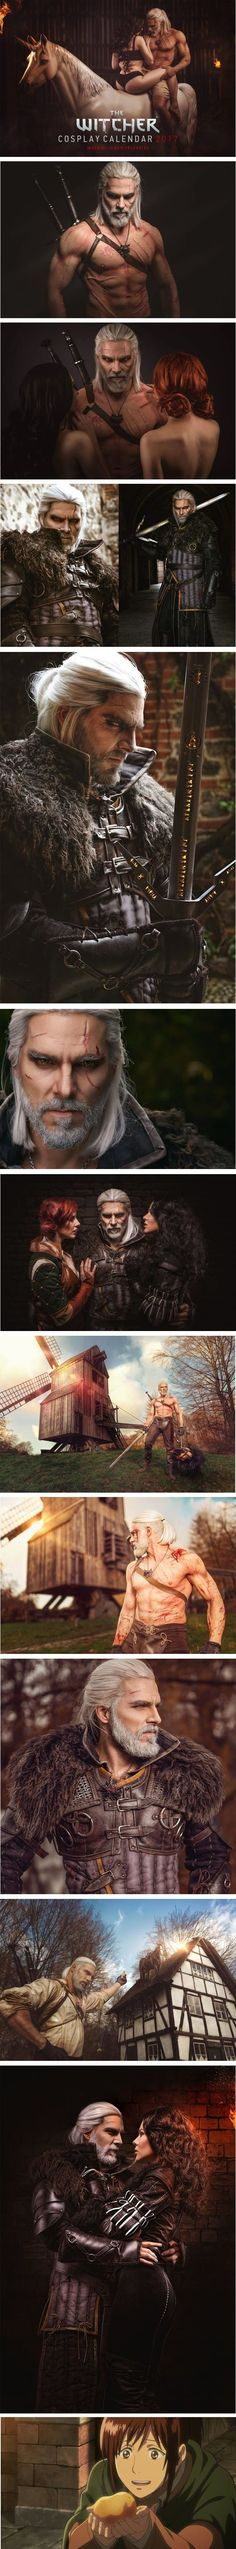 Geralt of Rivia Cosplay From The Witcher By Maul Cosplay